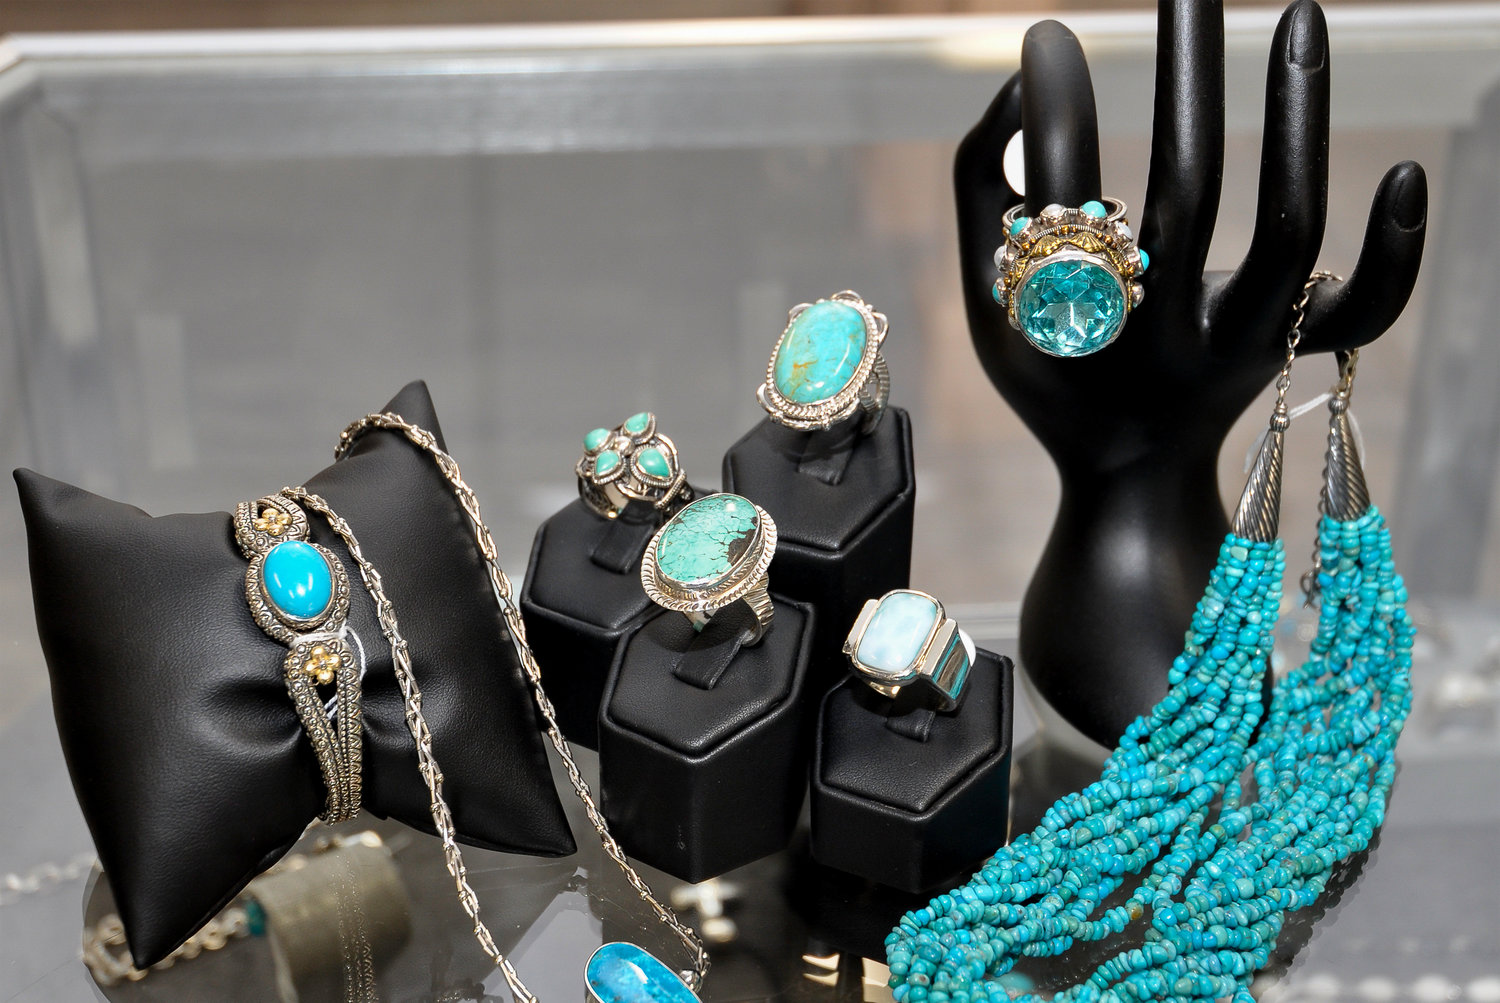 Find fine jewelry and other unique accessories made by local craftsmen at Compass Rose